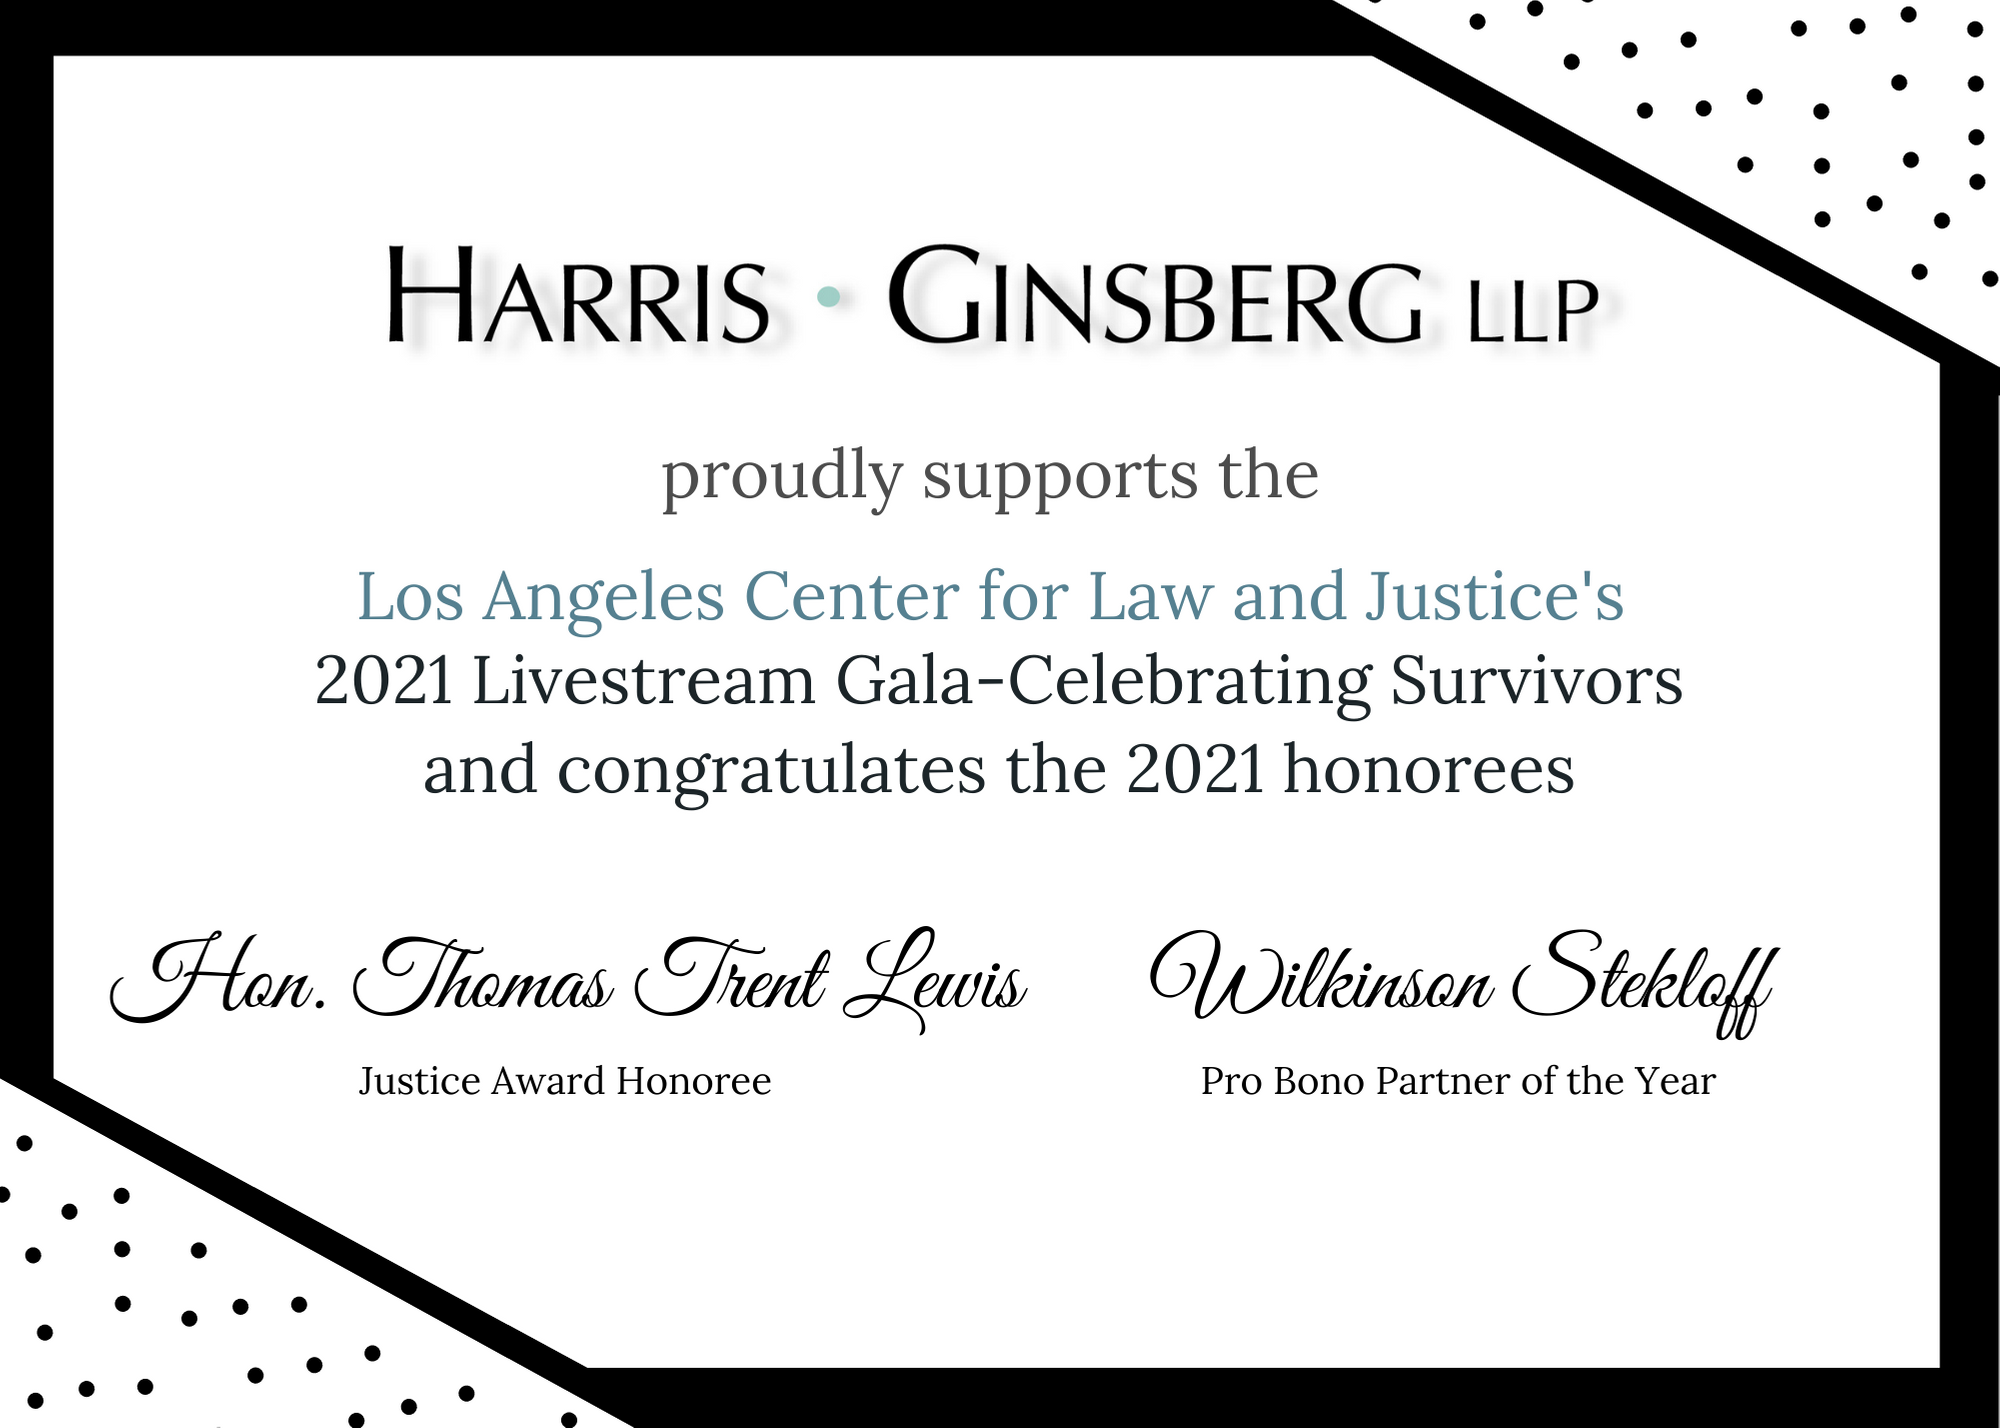 Harris Ginsberg LLP proudly supports the Los Angeles Center for Law and Justice's 2021 Livestream Gala - Celebrating Survivors and congratulates the 2021 honorees